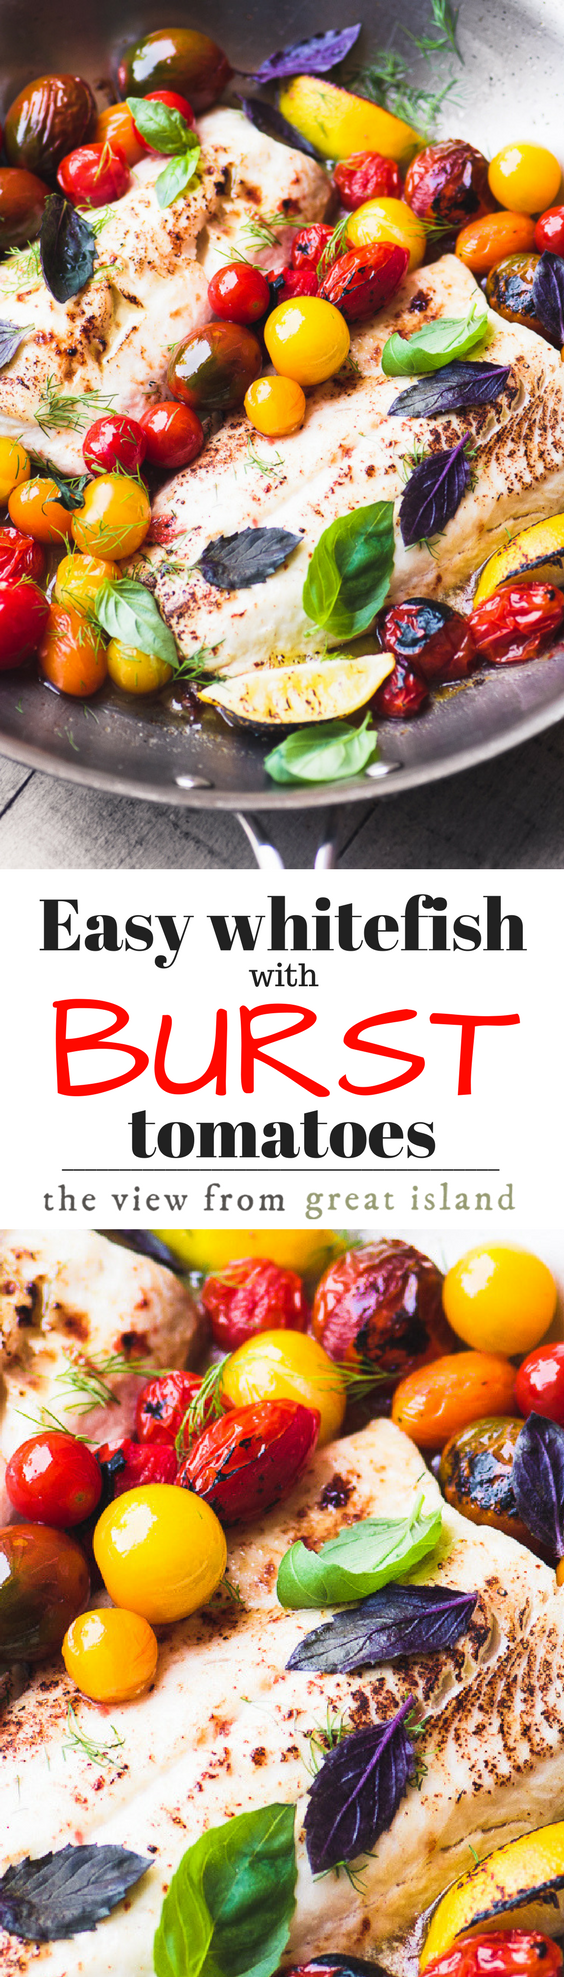 Whitefish with Burst Cherry Tomatoes is possibly the simplest summer meal on the planet ~ it's delicious and it's ready in 15 minutes. #fish #healthy #easyrecipe #easydinner #30minutemeal #onepanmeal #cherrytomatoes #basil #skillet #whitefish #meatless #glutenfree #paleo #whole30 #weightwatchers